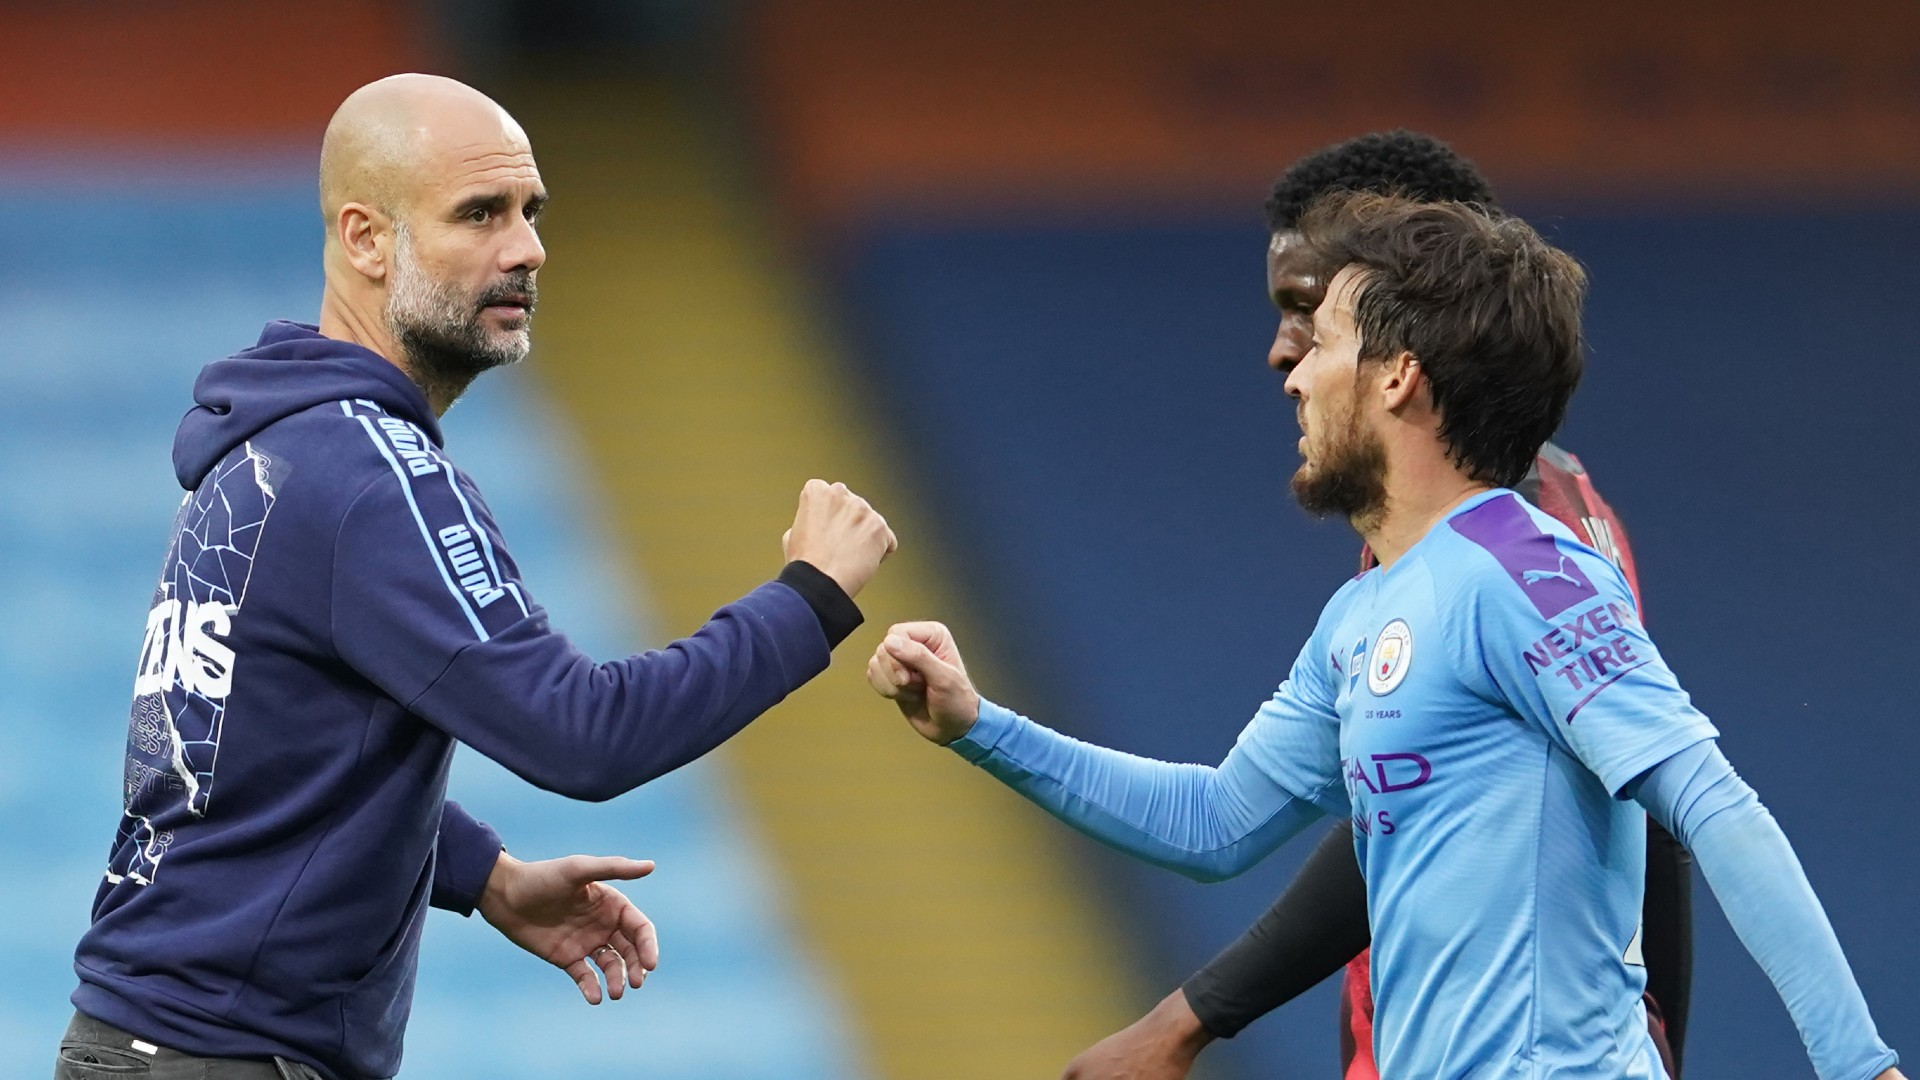 Manchester City midfielder David Silva will return to the Etihad Stadium for a proper send-off after making his final Premier League appearance for the club in Sunday's 5-0 thrashing of Norwich City, manager Pep Guardiola said. Silva, who joined City a decade ago, will leave the club at the end of the season. He made […]